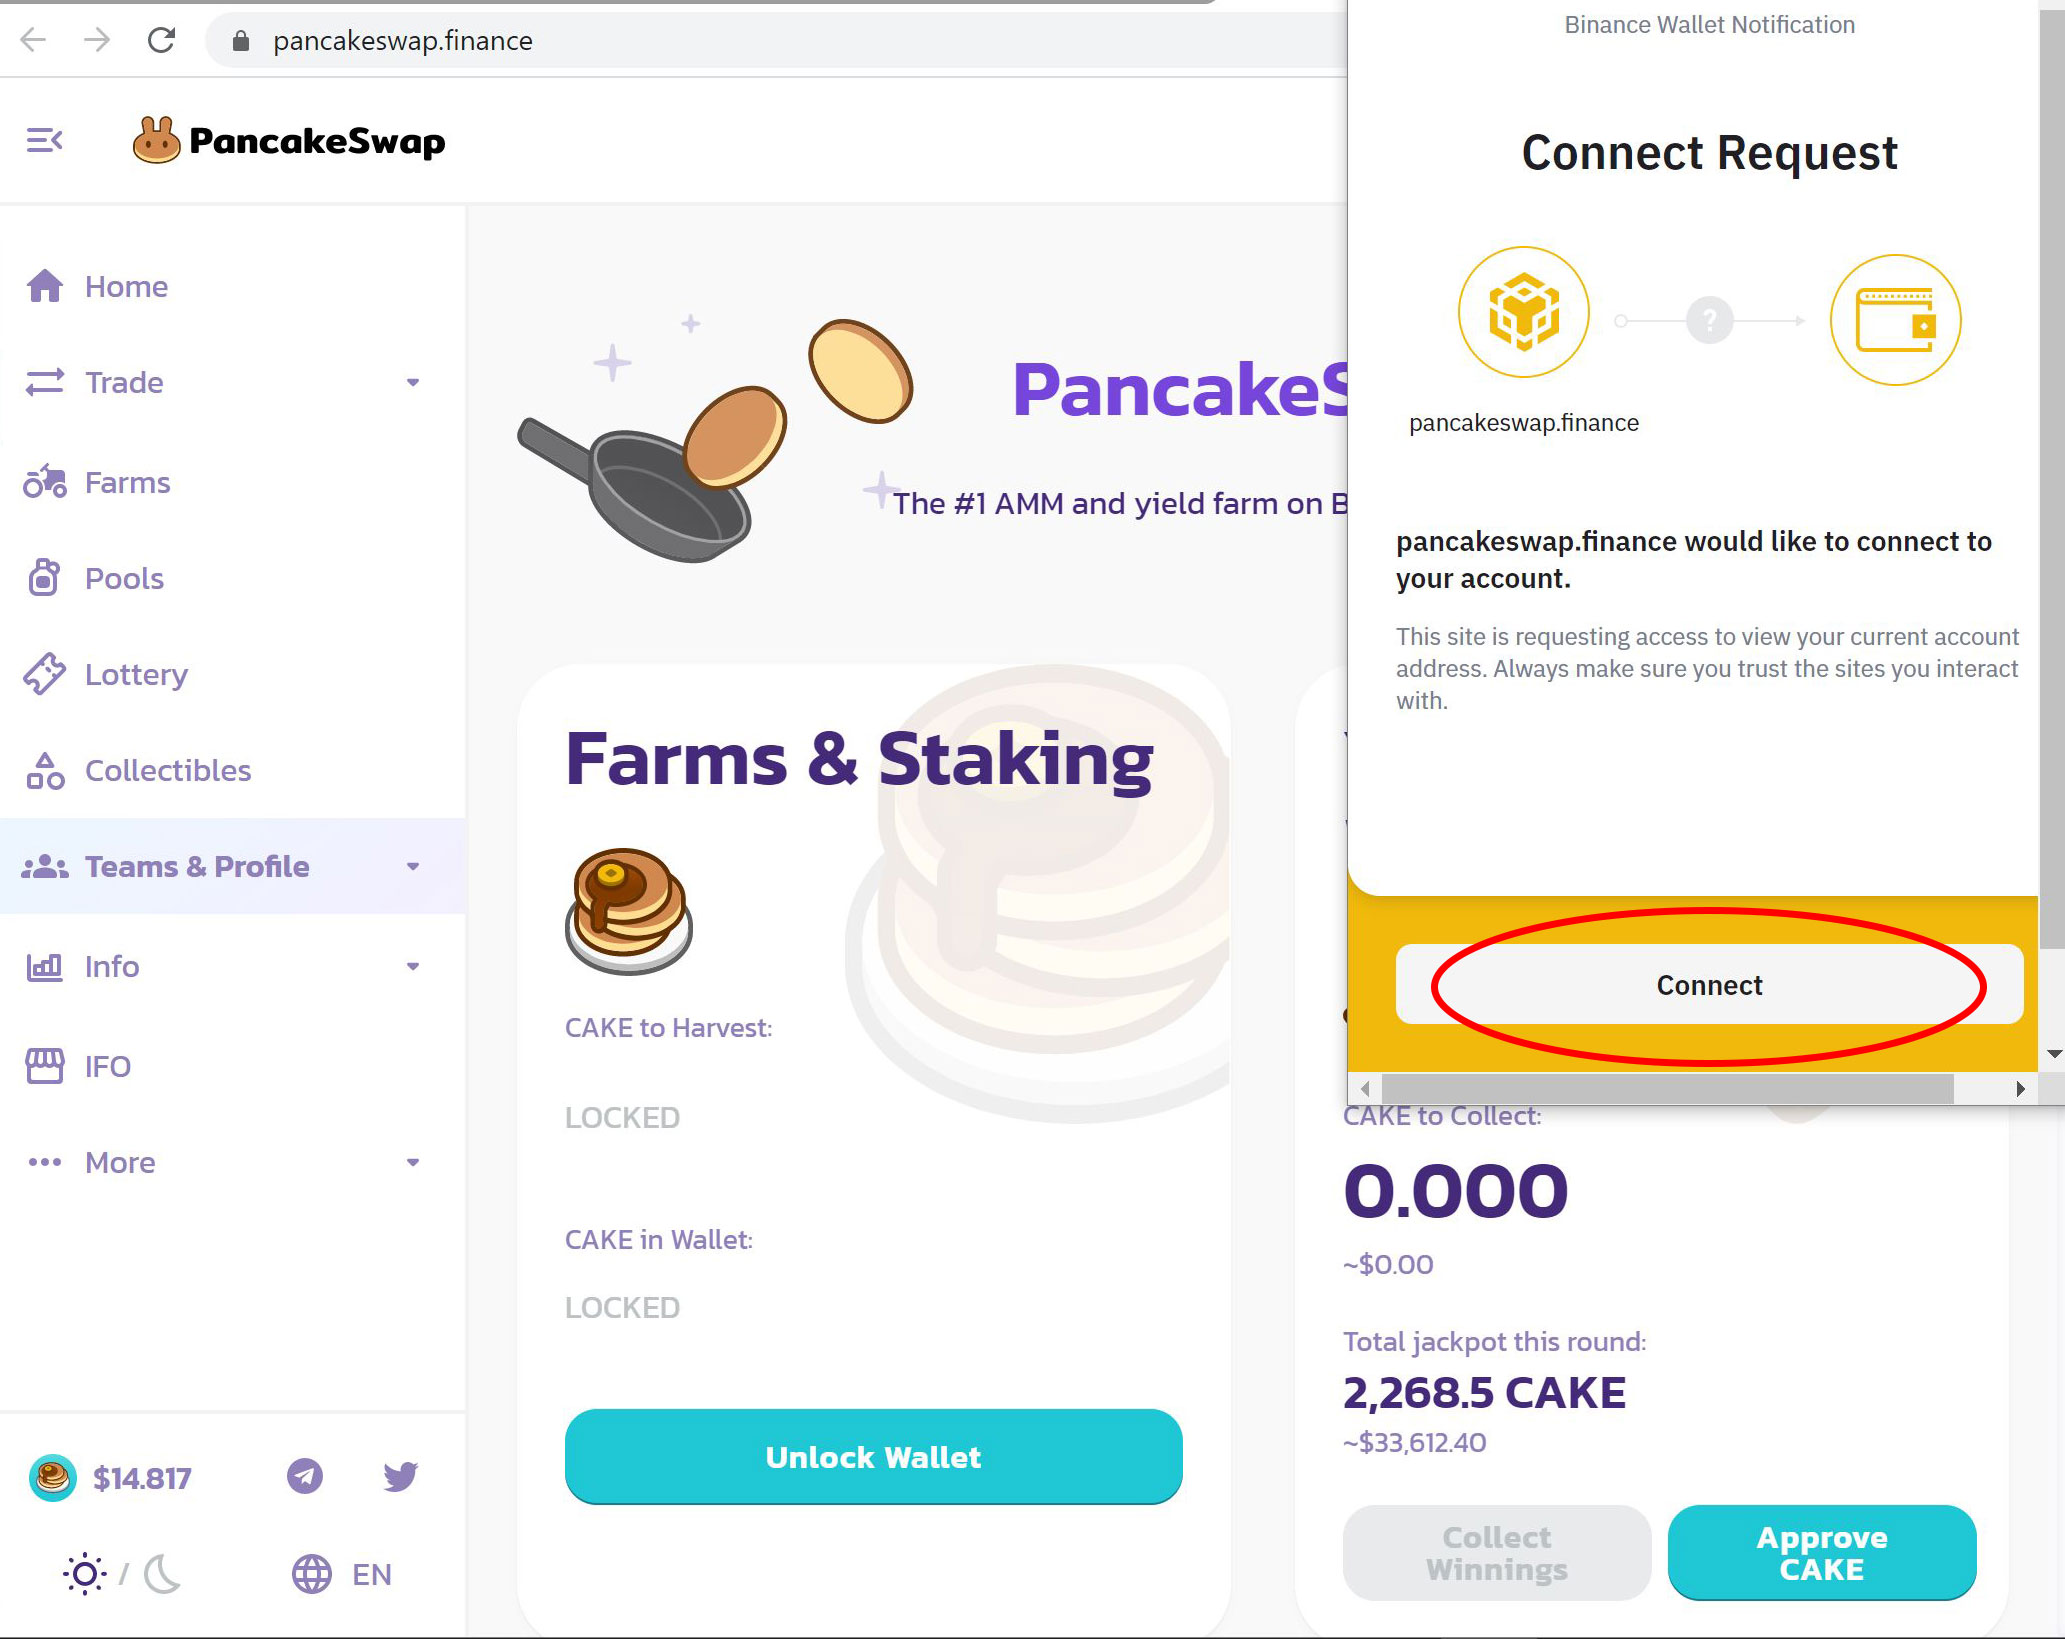 Pancakeswap connect request